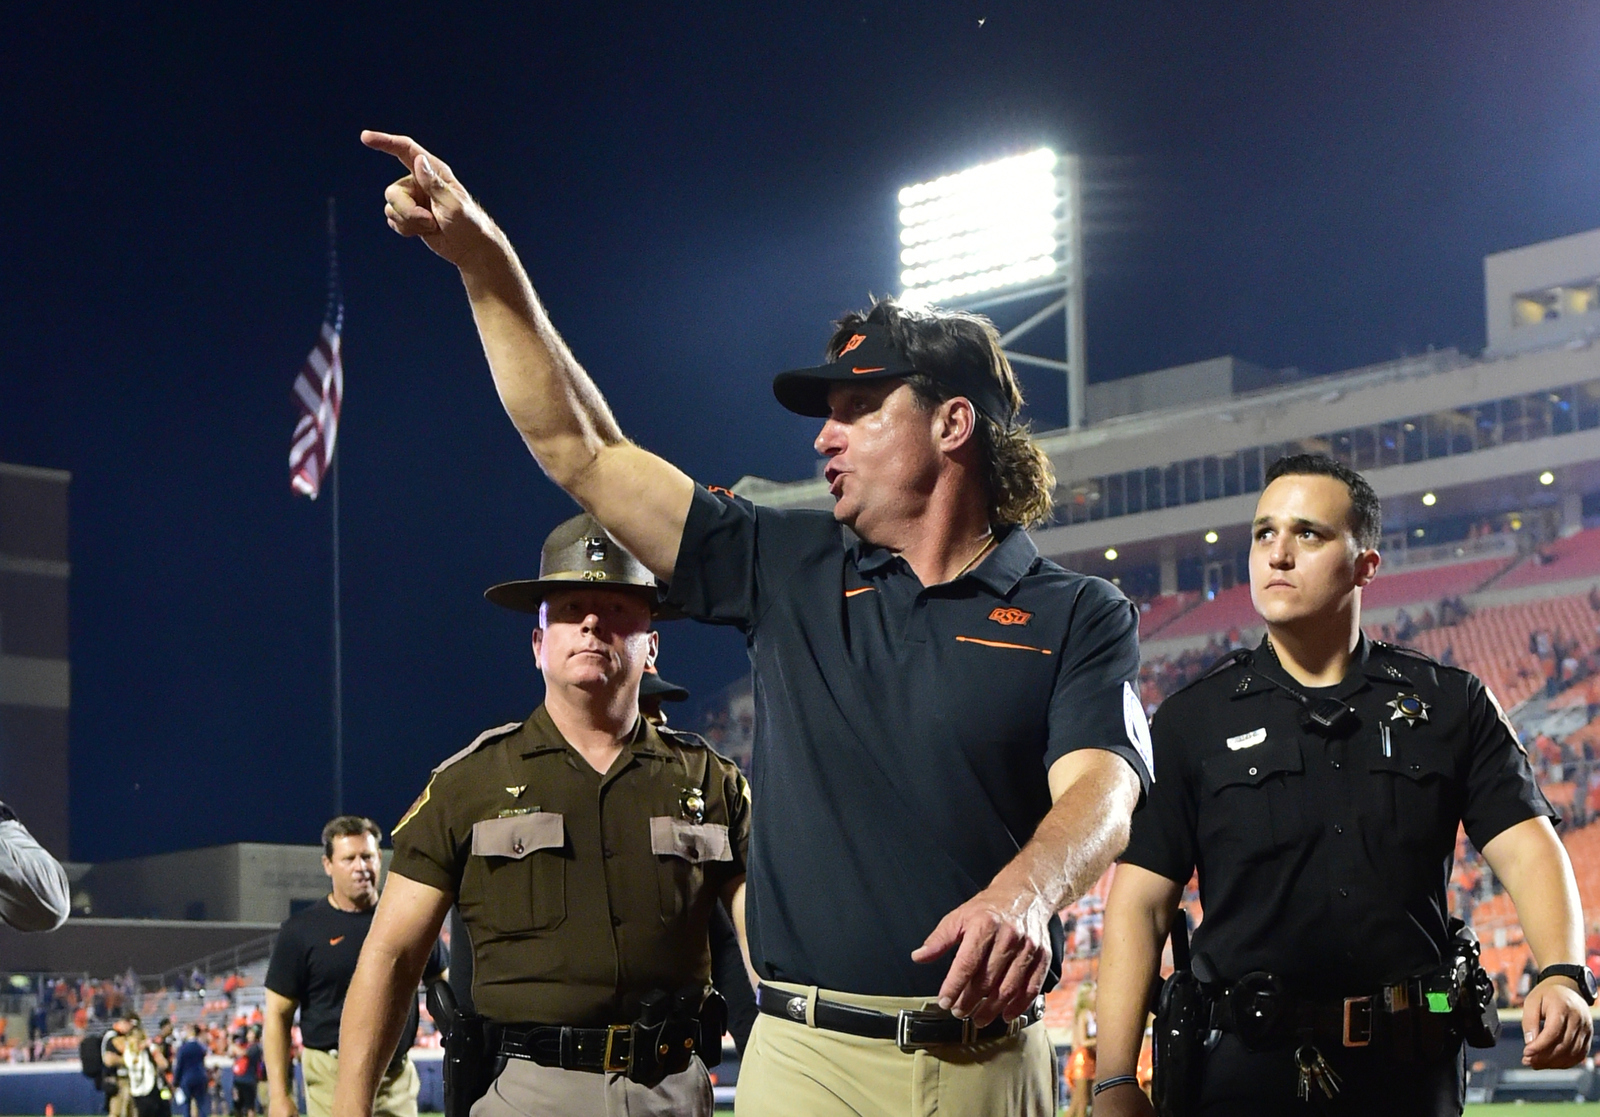 Mike Gundy's Opening Statement Which Did Not Receive Much Attention